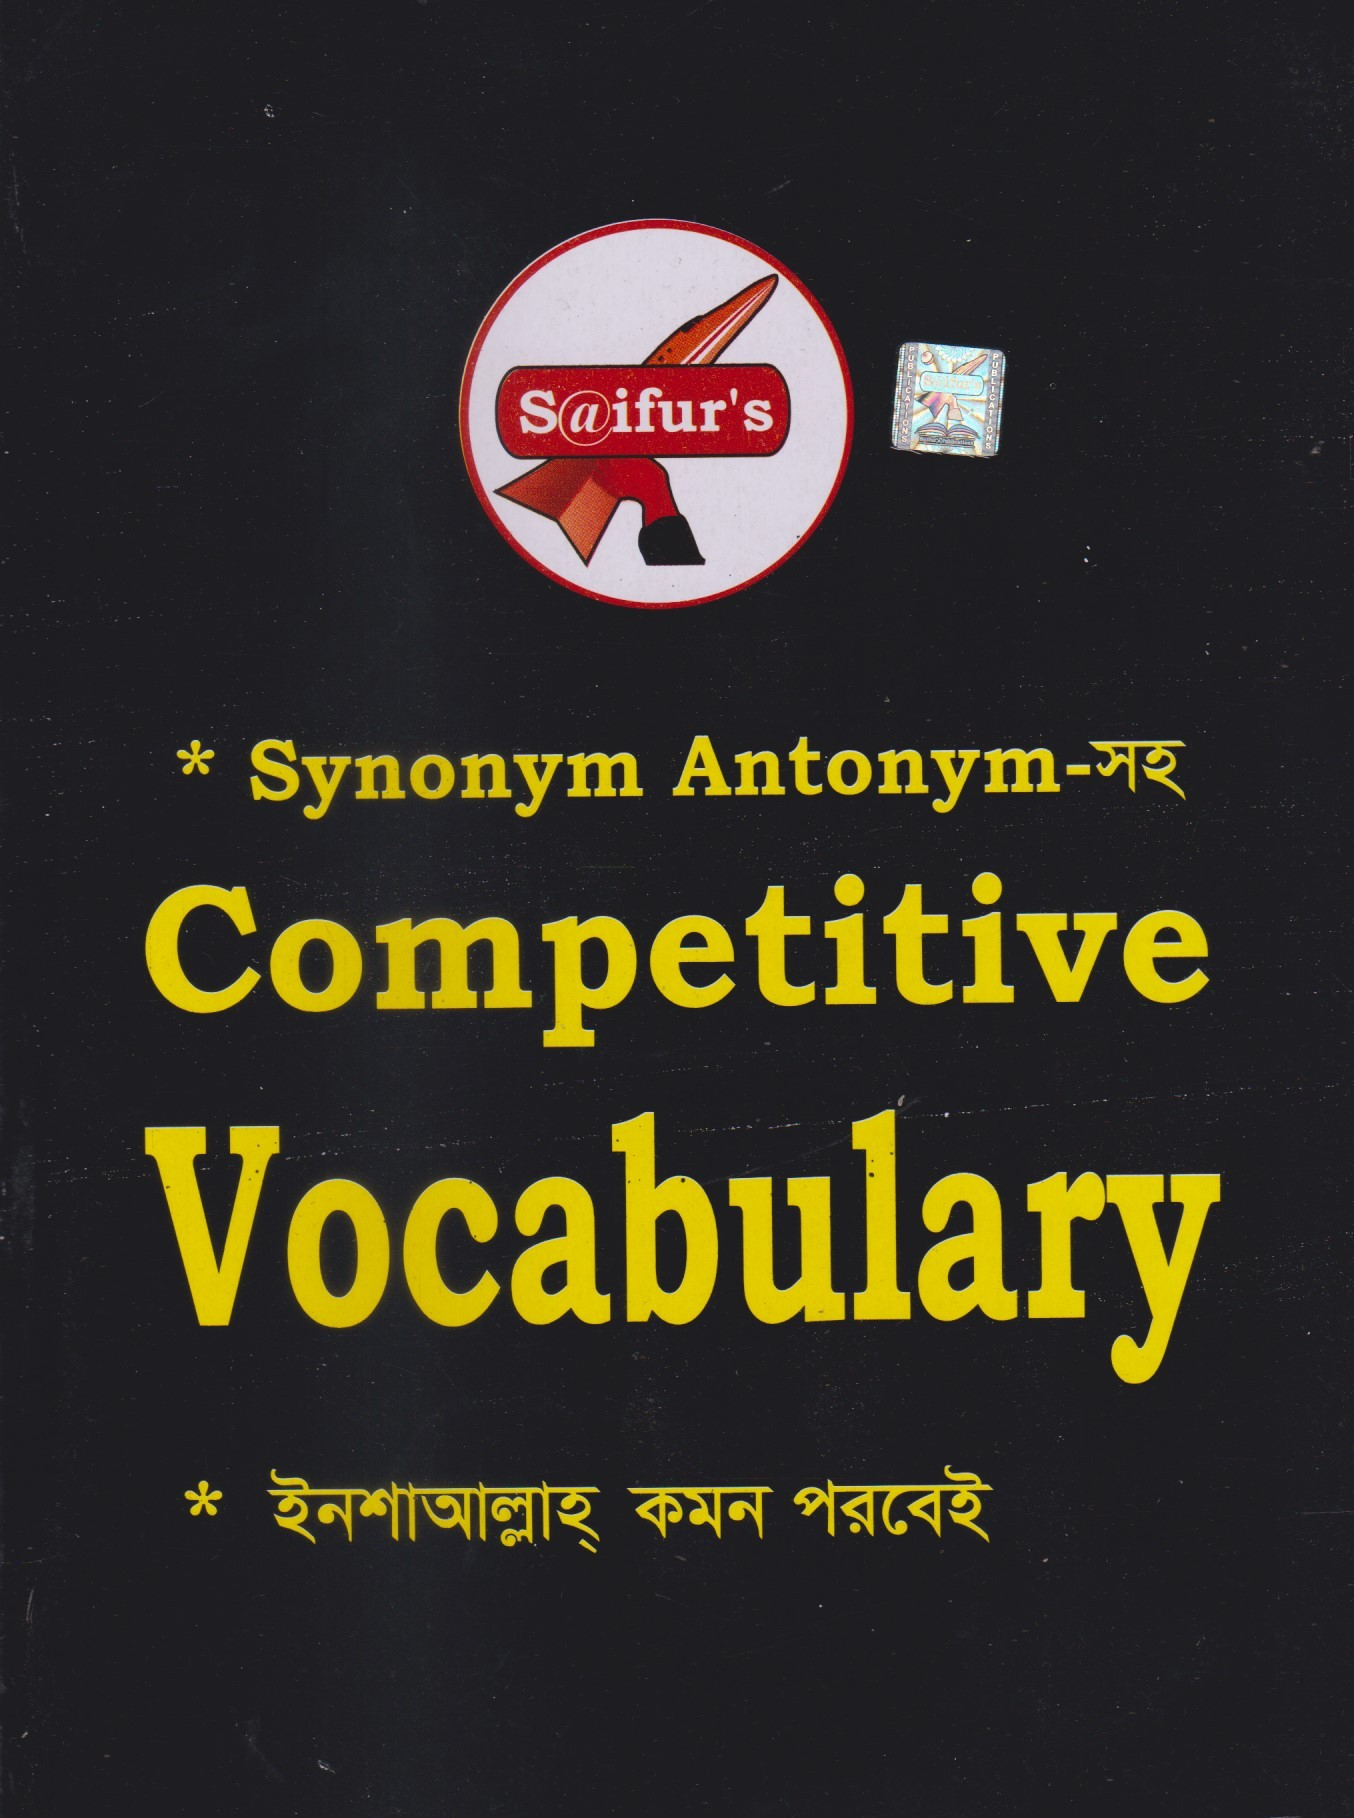 saifurs competitive vocabulary online order link, saifurs competitive vocabulary online, saifurs competitive vocabulary pdf,